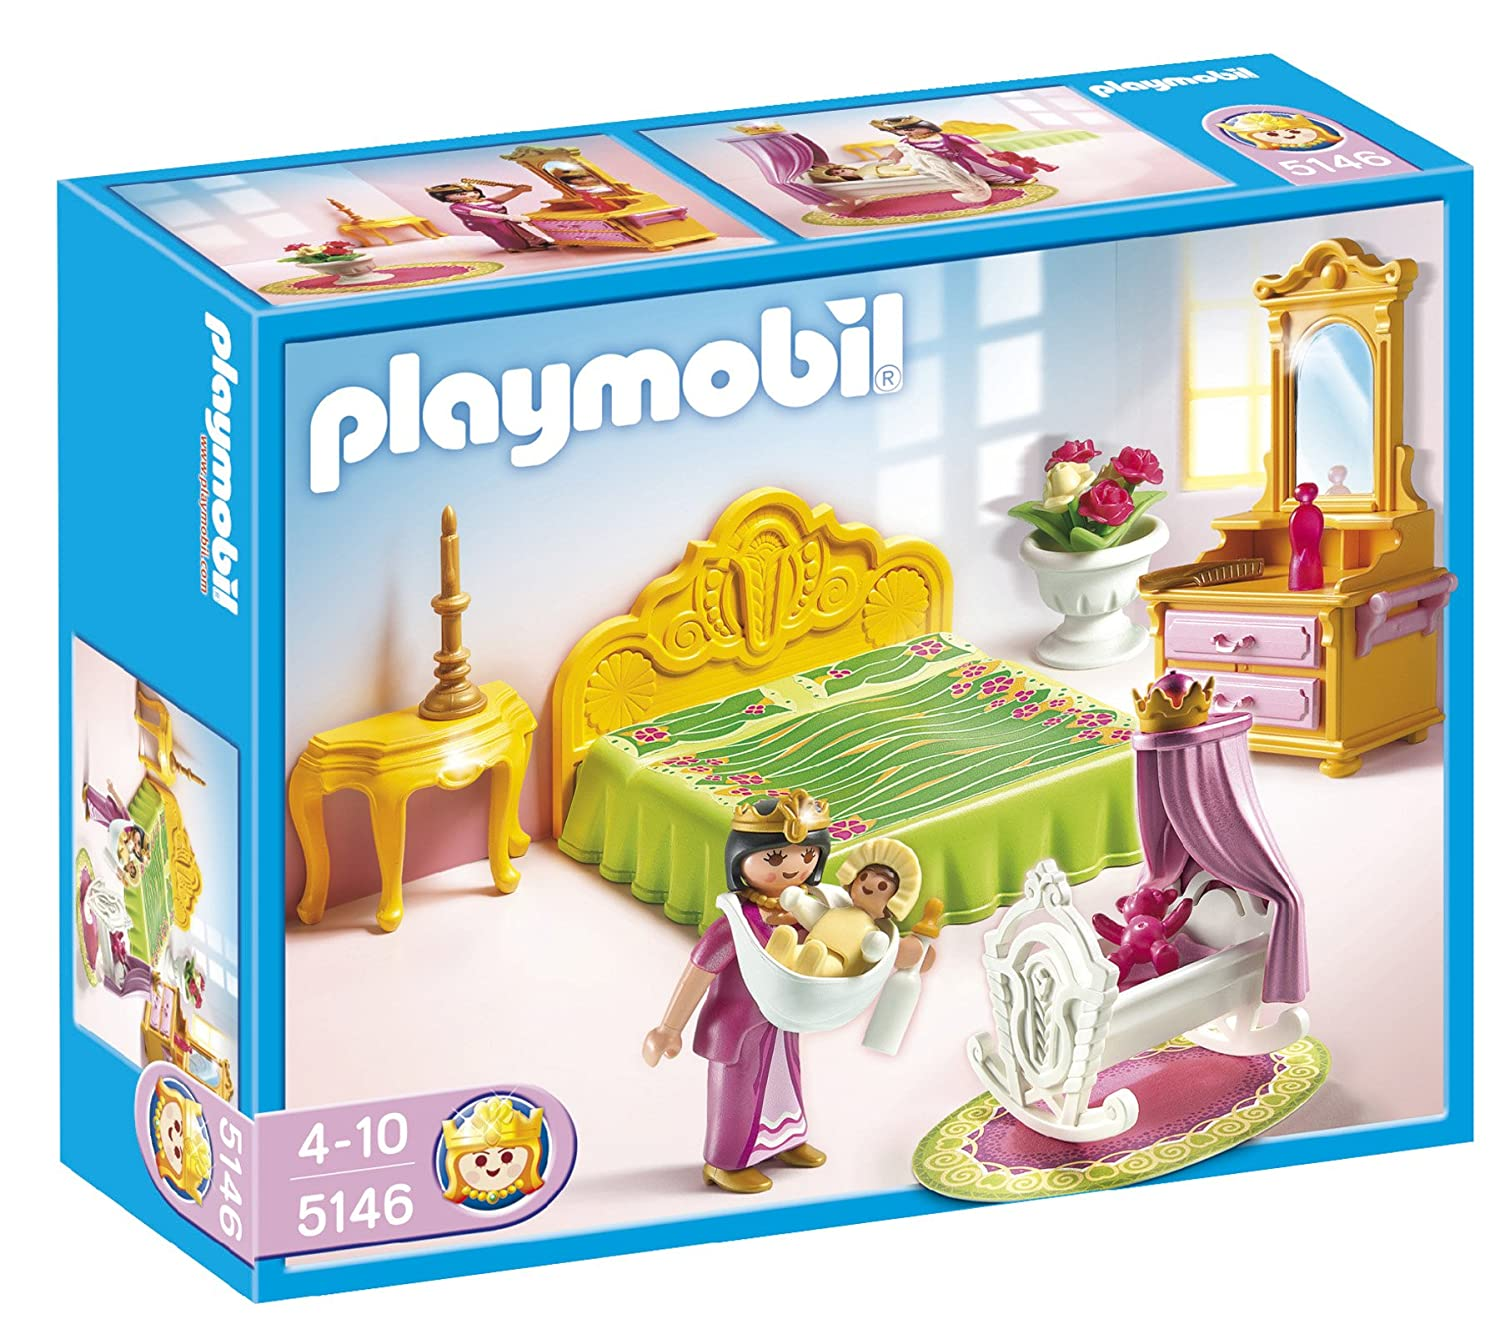 playmobil 5146 princess bed chamber with cradle